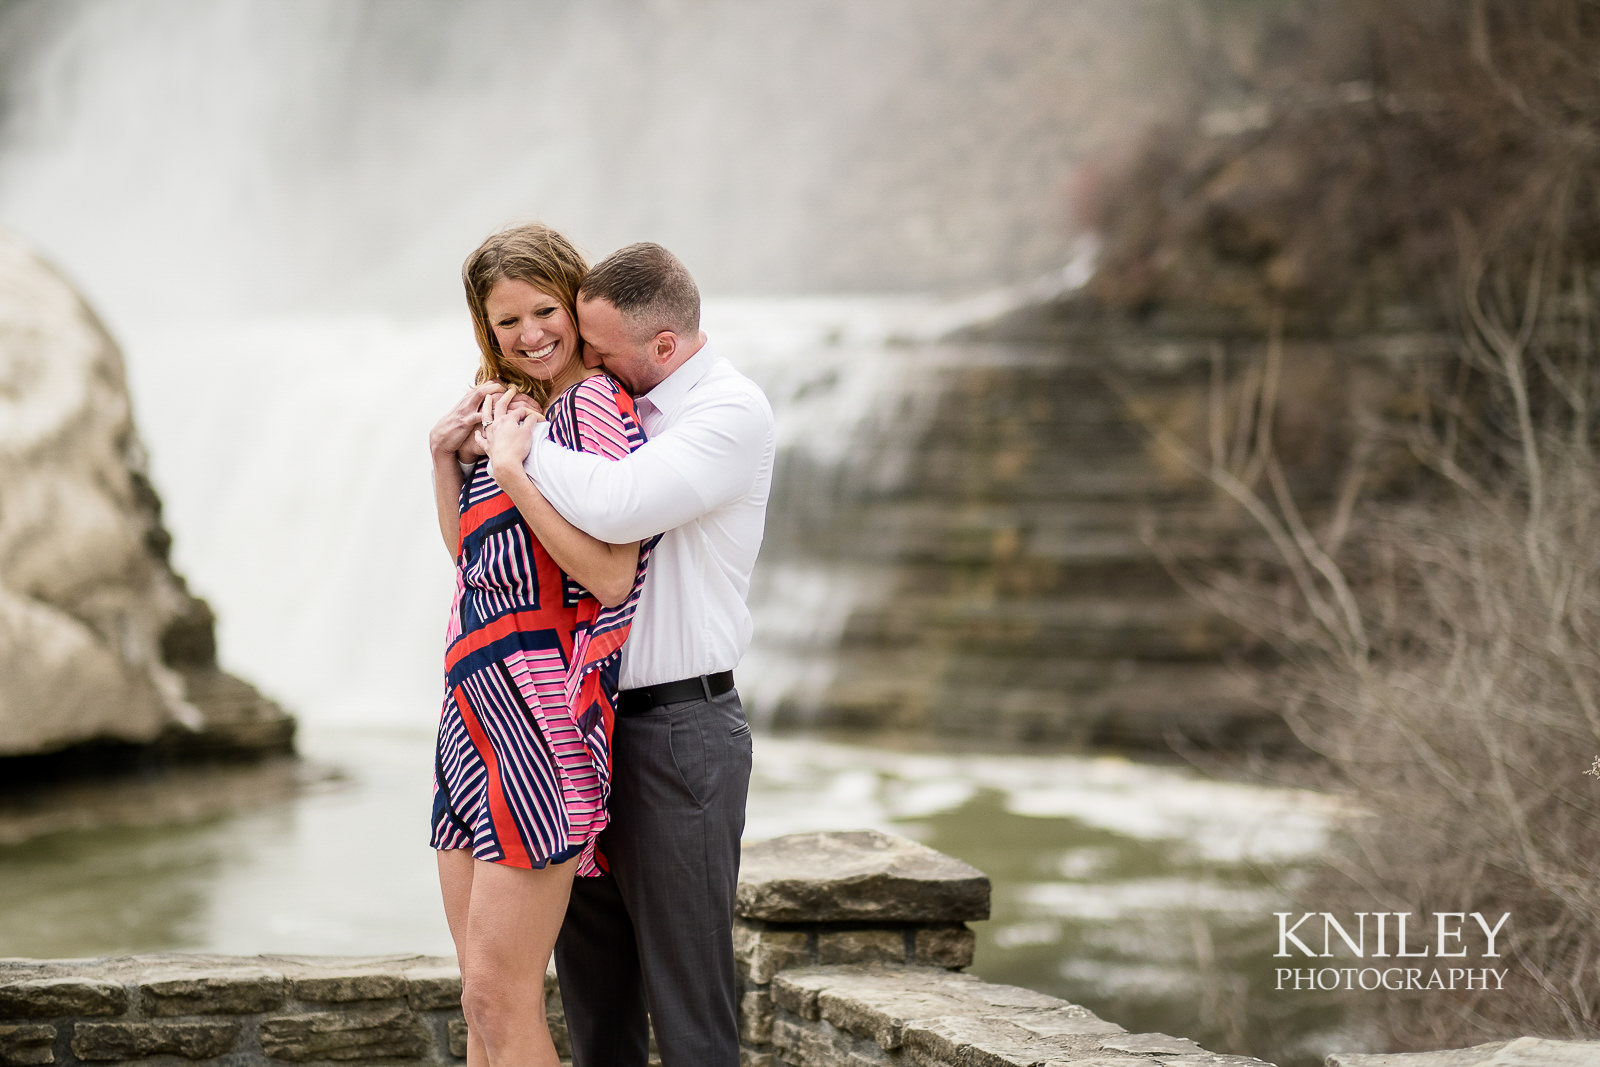 024 - Letchworth State Park engagement picture - XT3A3258.jpg